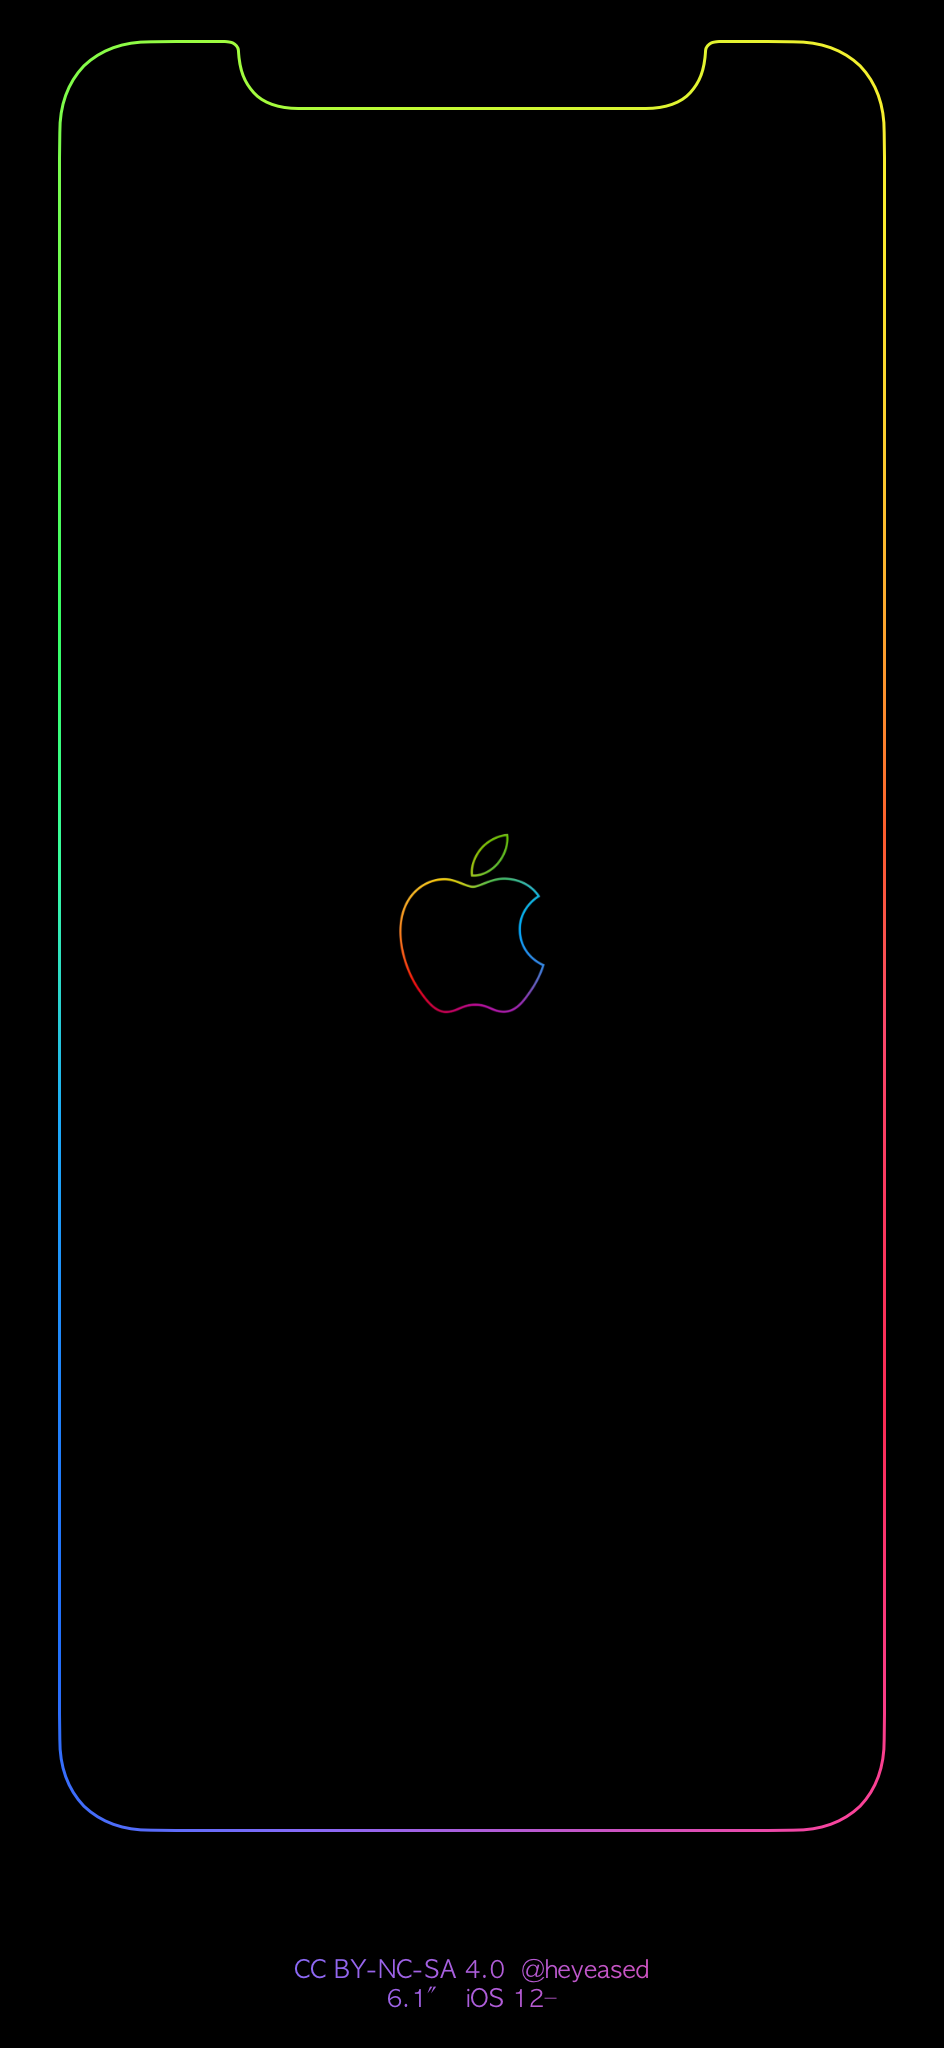 Wallpapers Apple Iphone Posted By Christopher Johnson